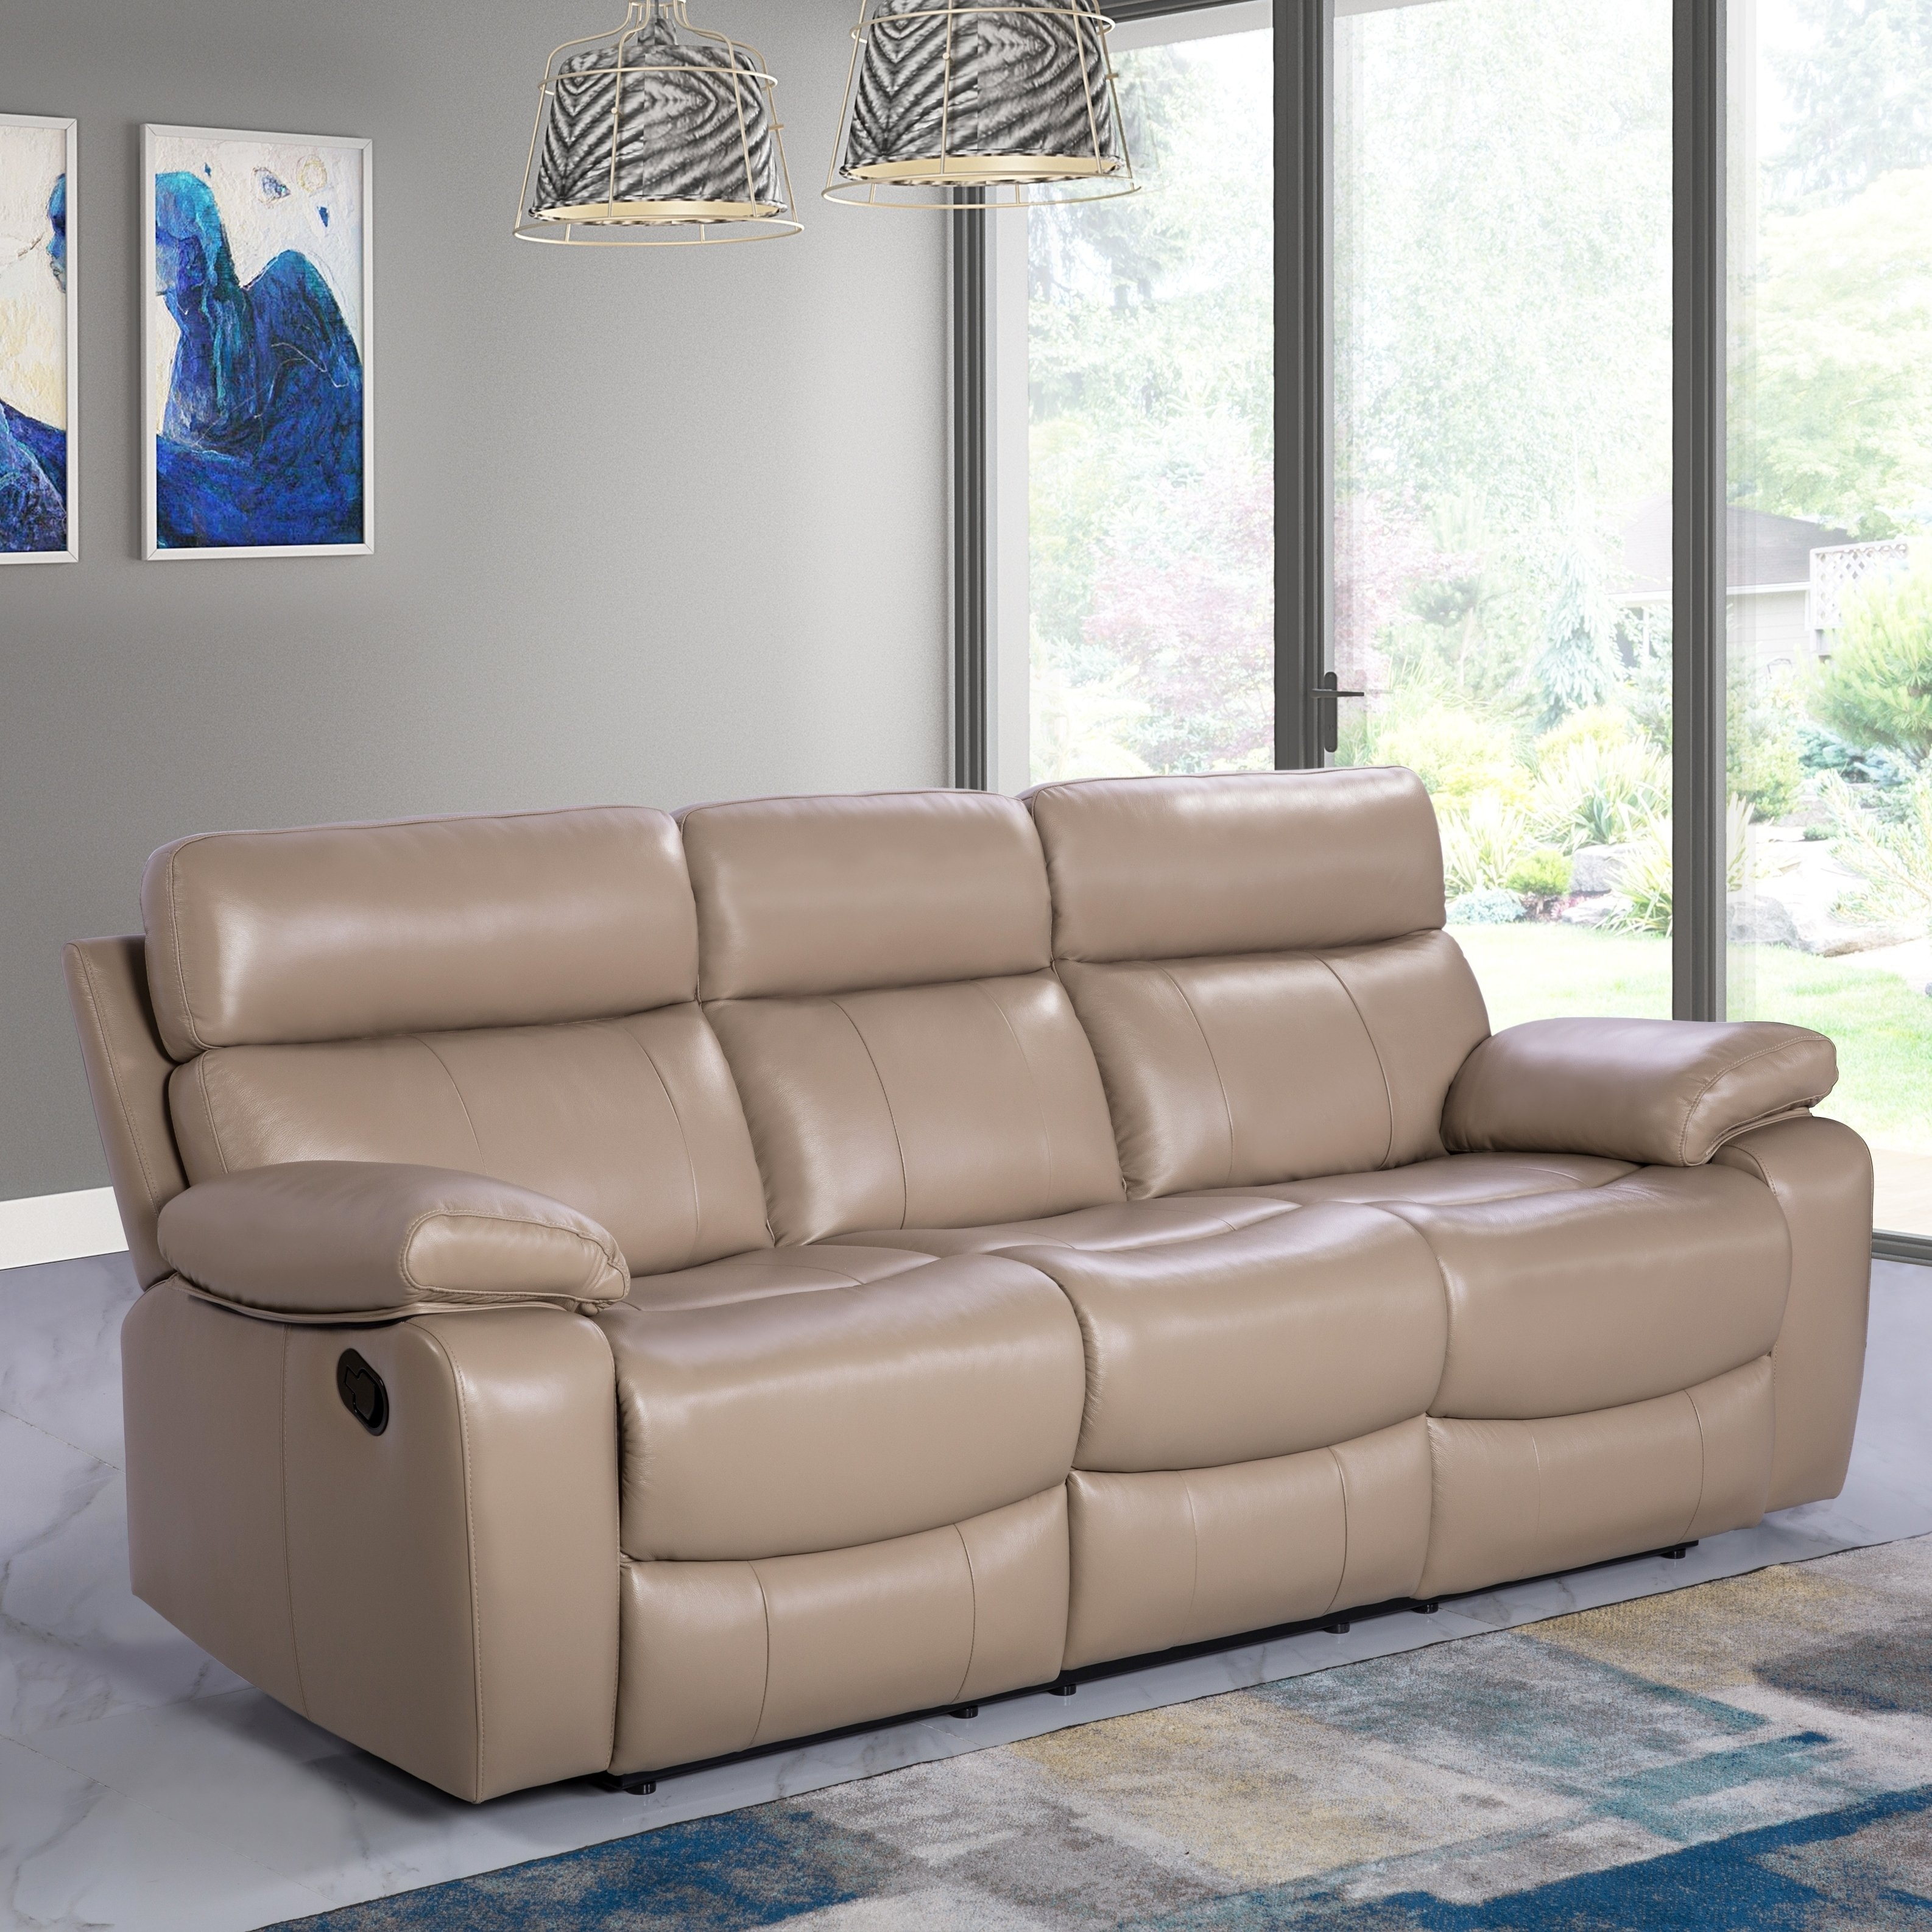 Beige Leather Reclining Sofa | Baci Living Room with Clyde Saddle 3 Piece Power Reclining Sectionals With Power Headrest & Usb (Image 7 of 30)